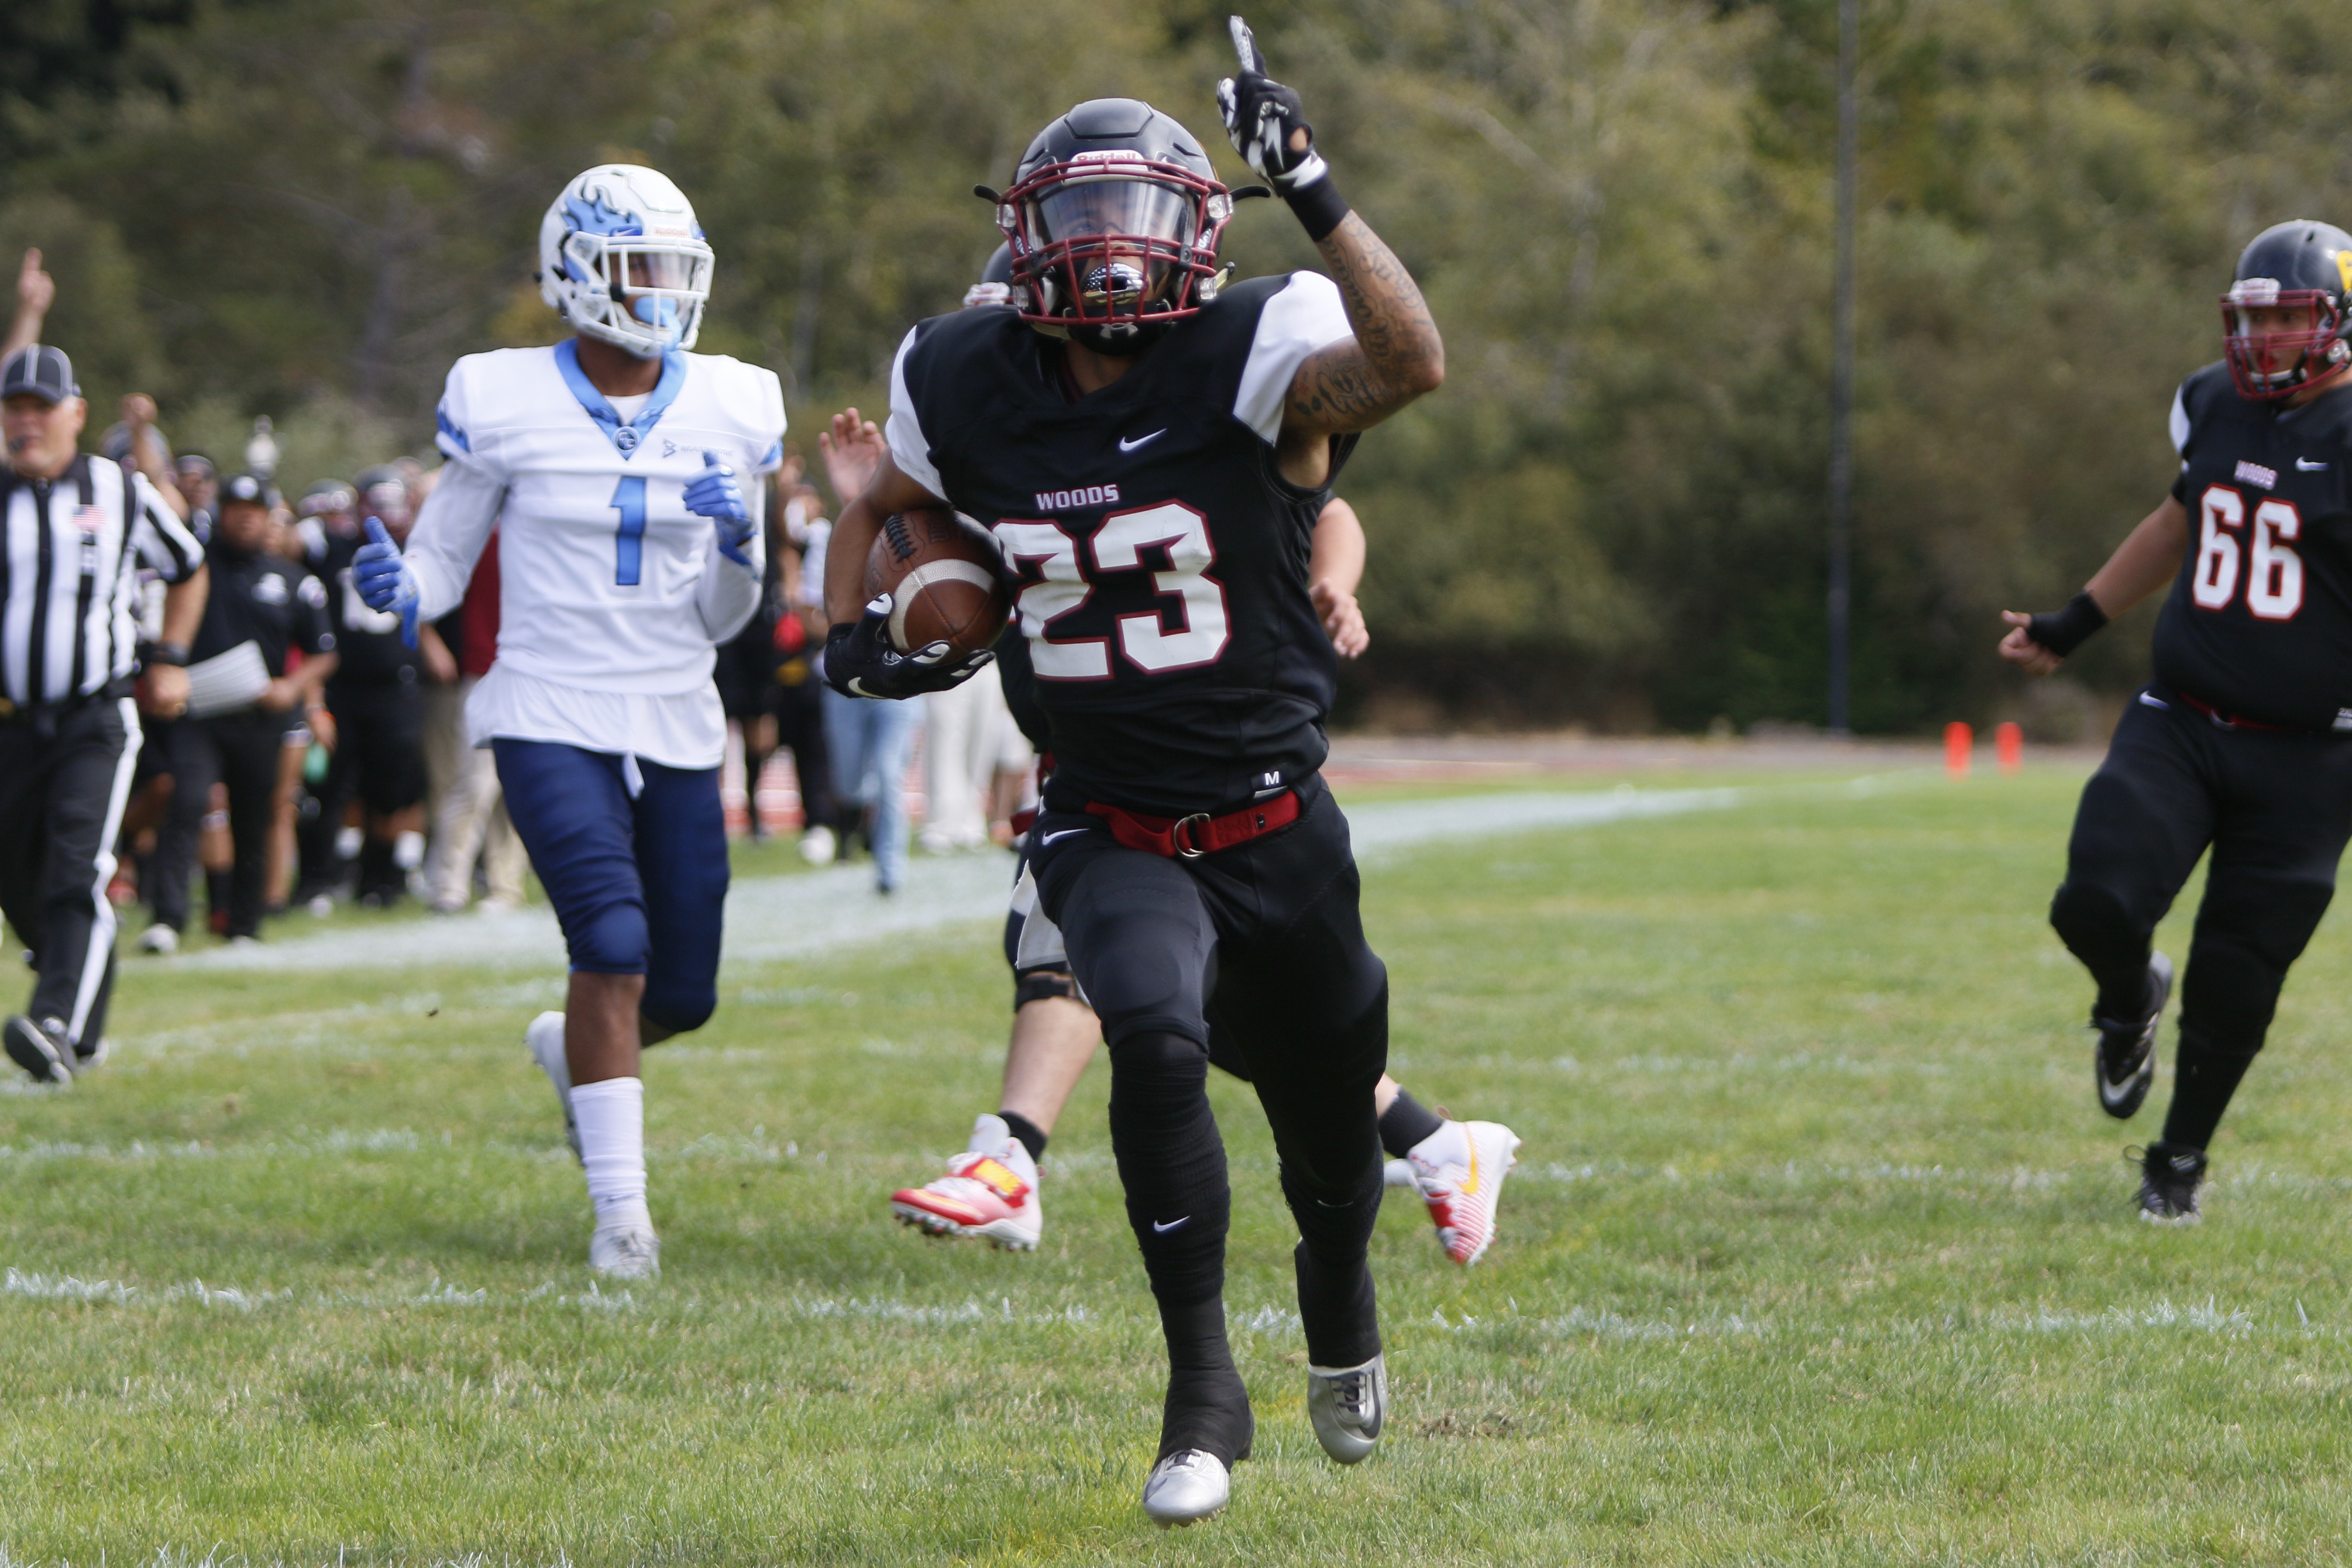 Juco Football: Redwoods To Play Home Opener – Times Standard Regarding When Does School Start At College Of The Redwoods After Winter Break